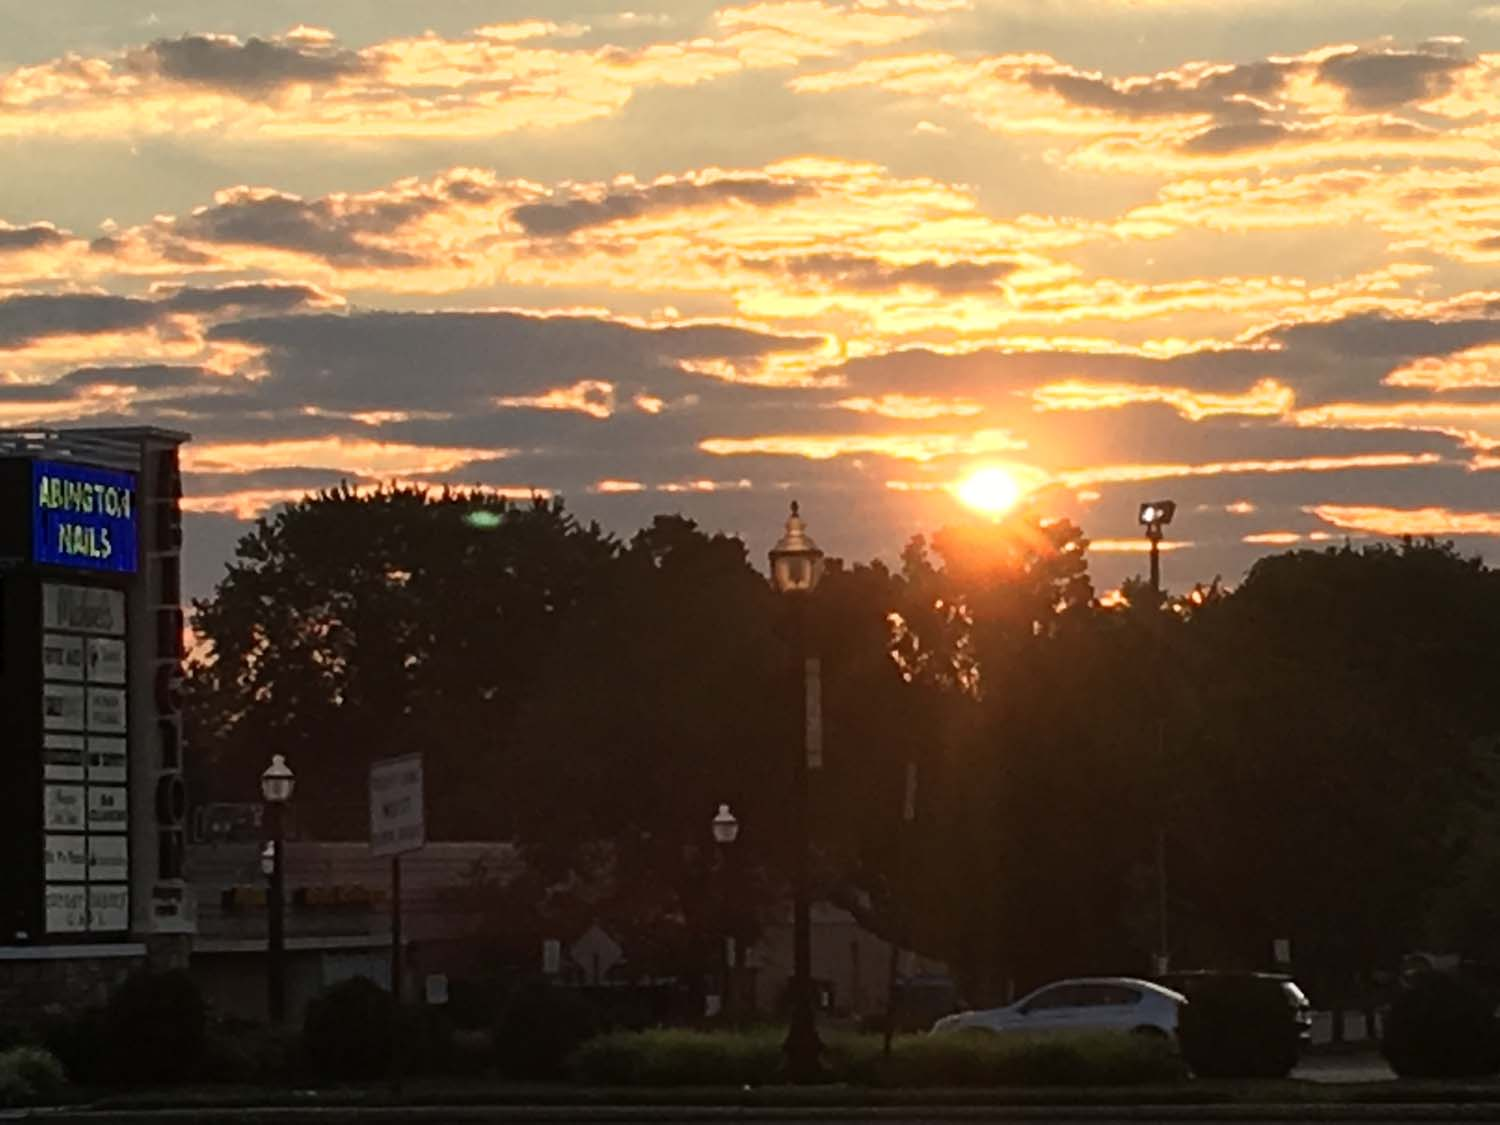 Abington Towne center sunrise